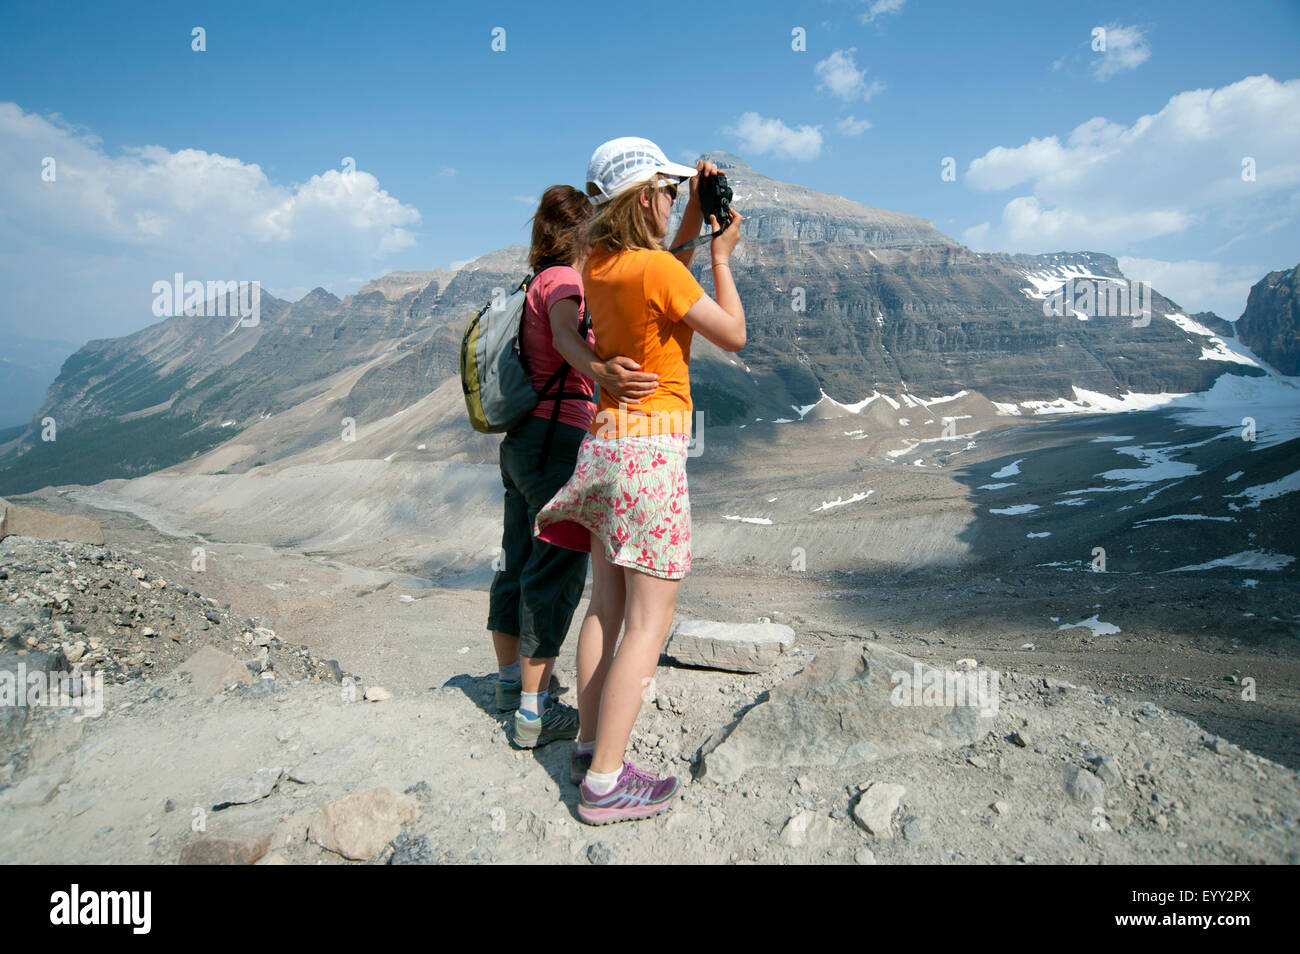 Caucasian mother and daughter photographing scenic view of Six Glaciers Trail, Banff, Alberta, Canada Stock Photo